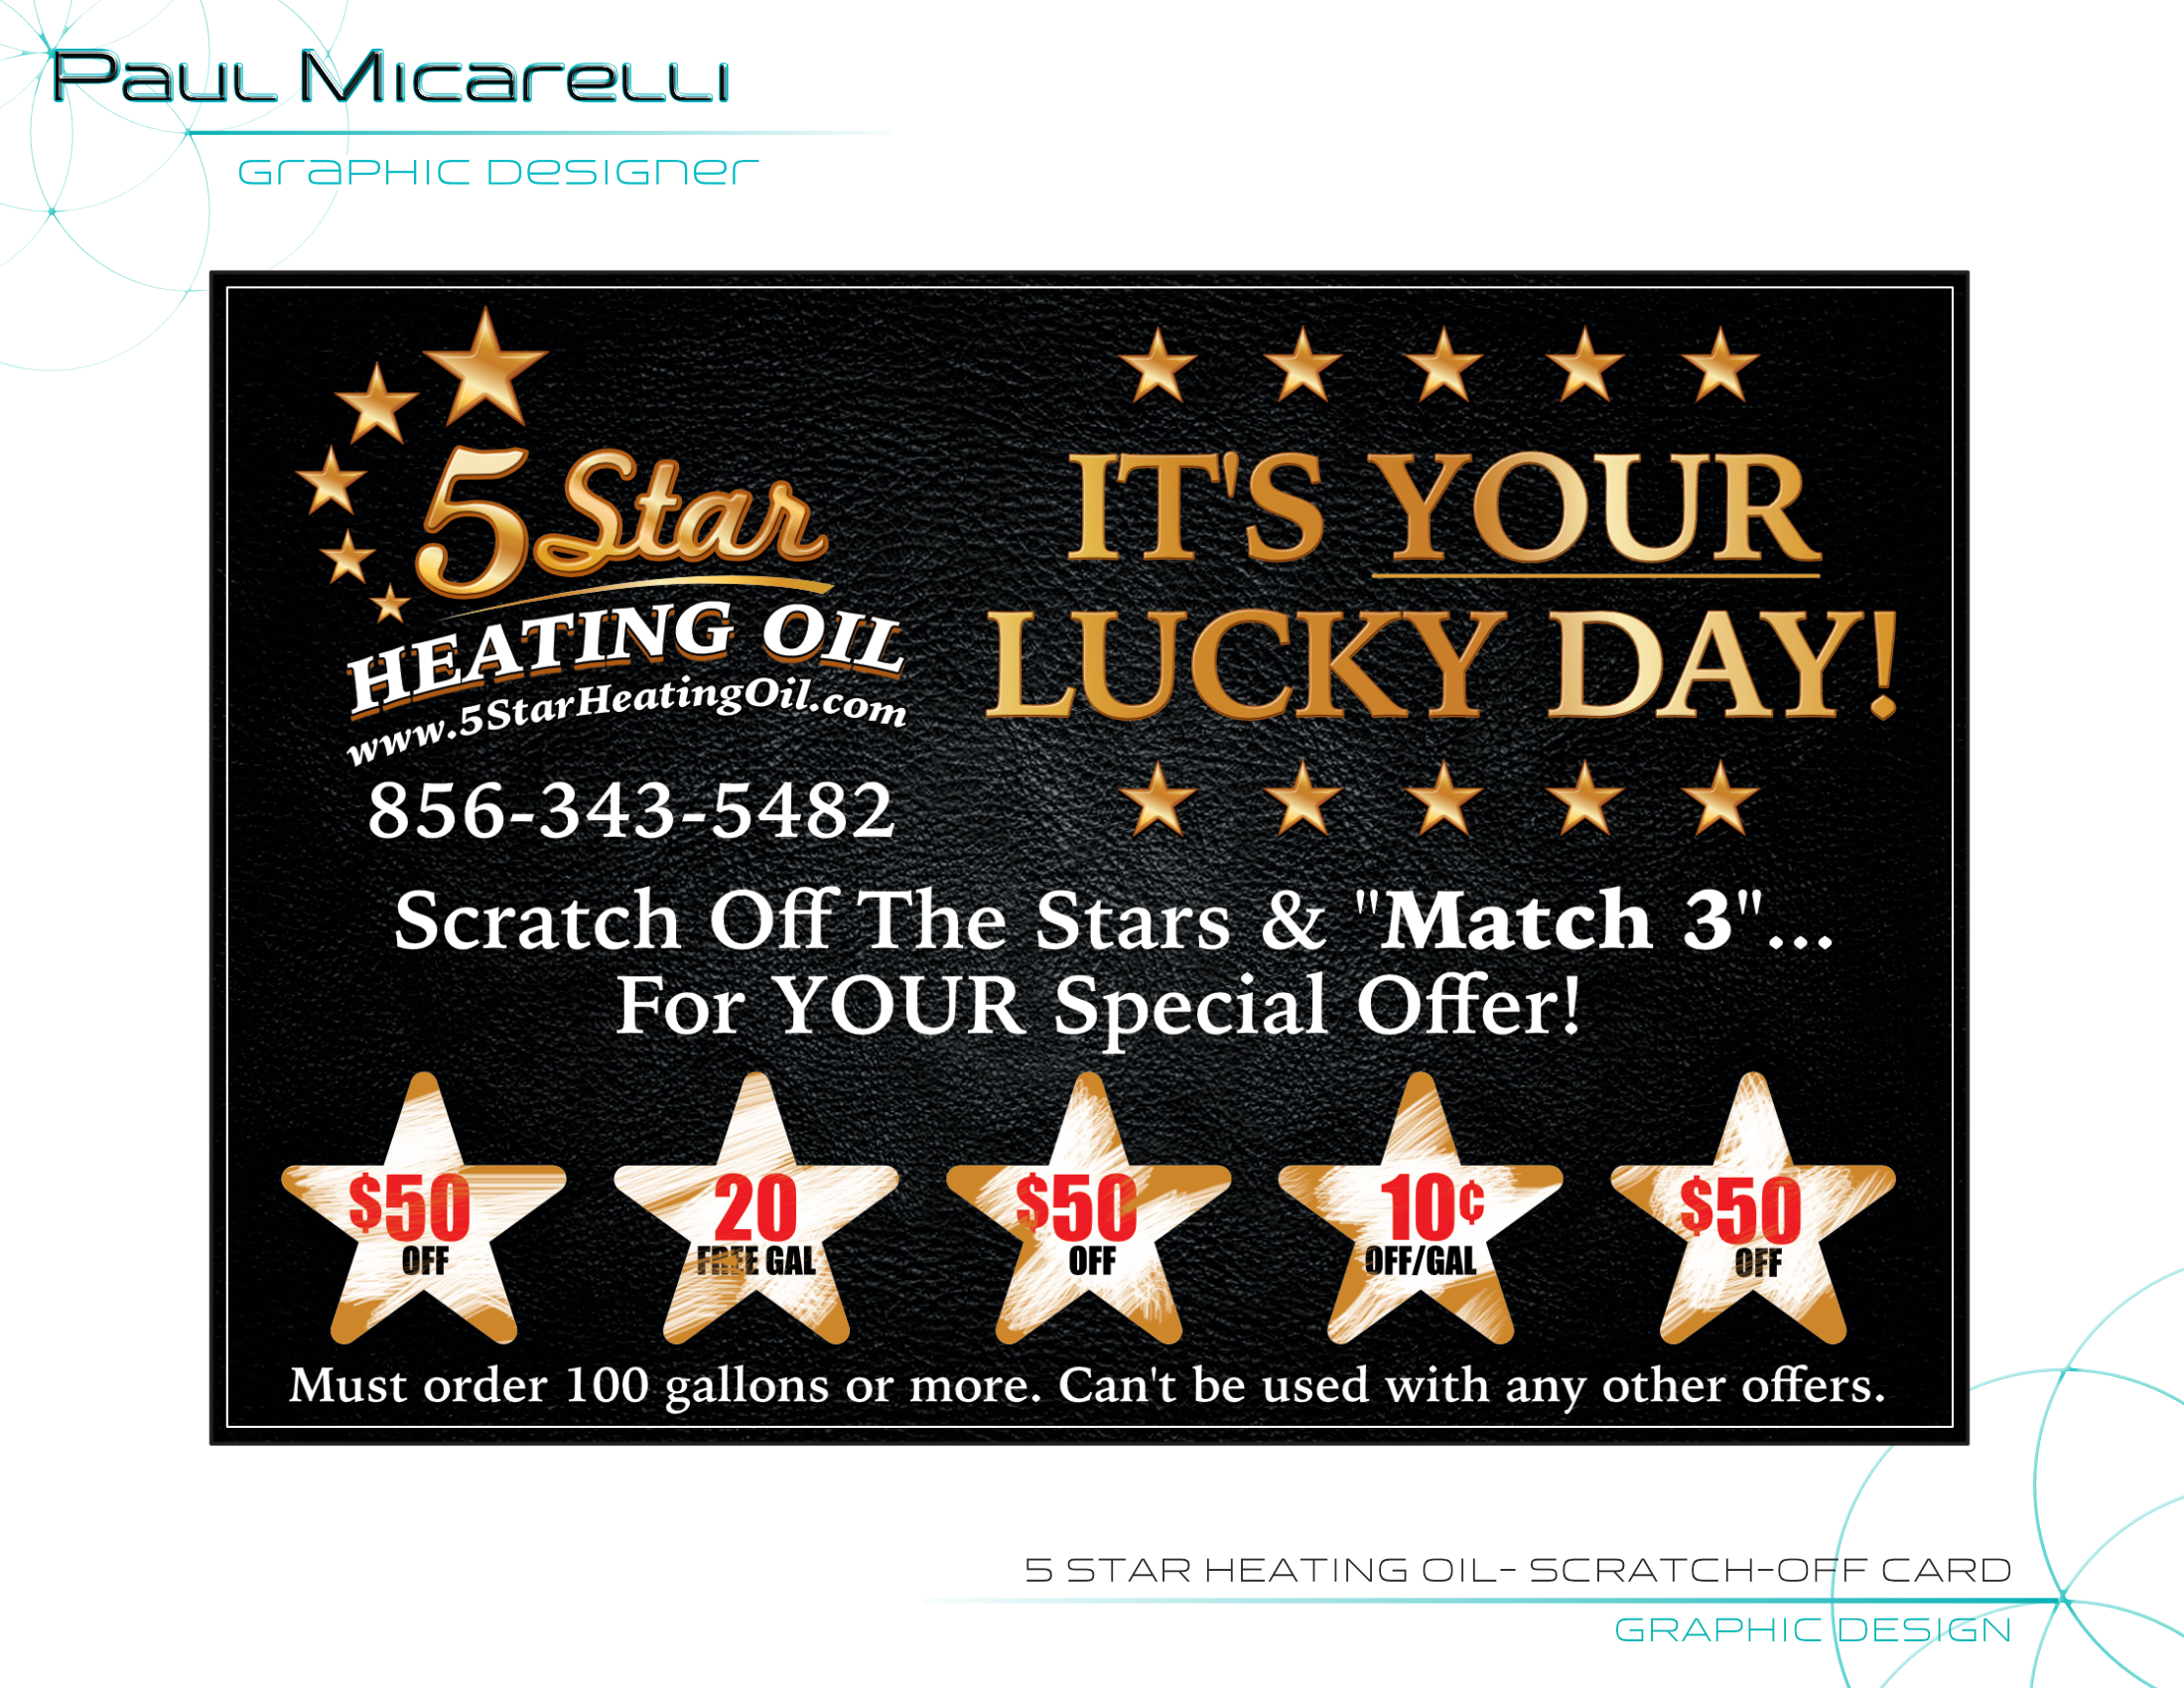 Paul-Micarelli-5 Star Heating Oil-Scratc